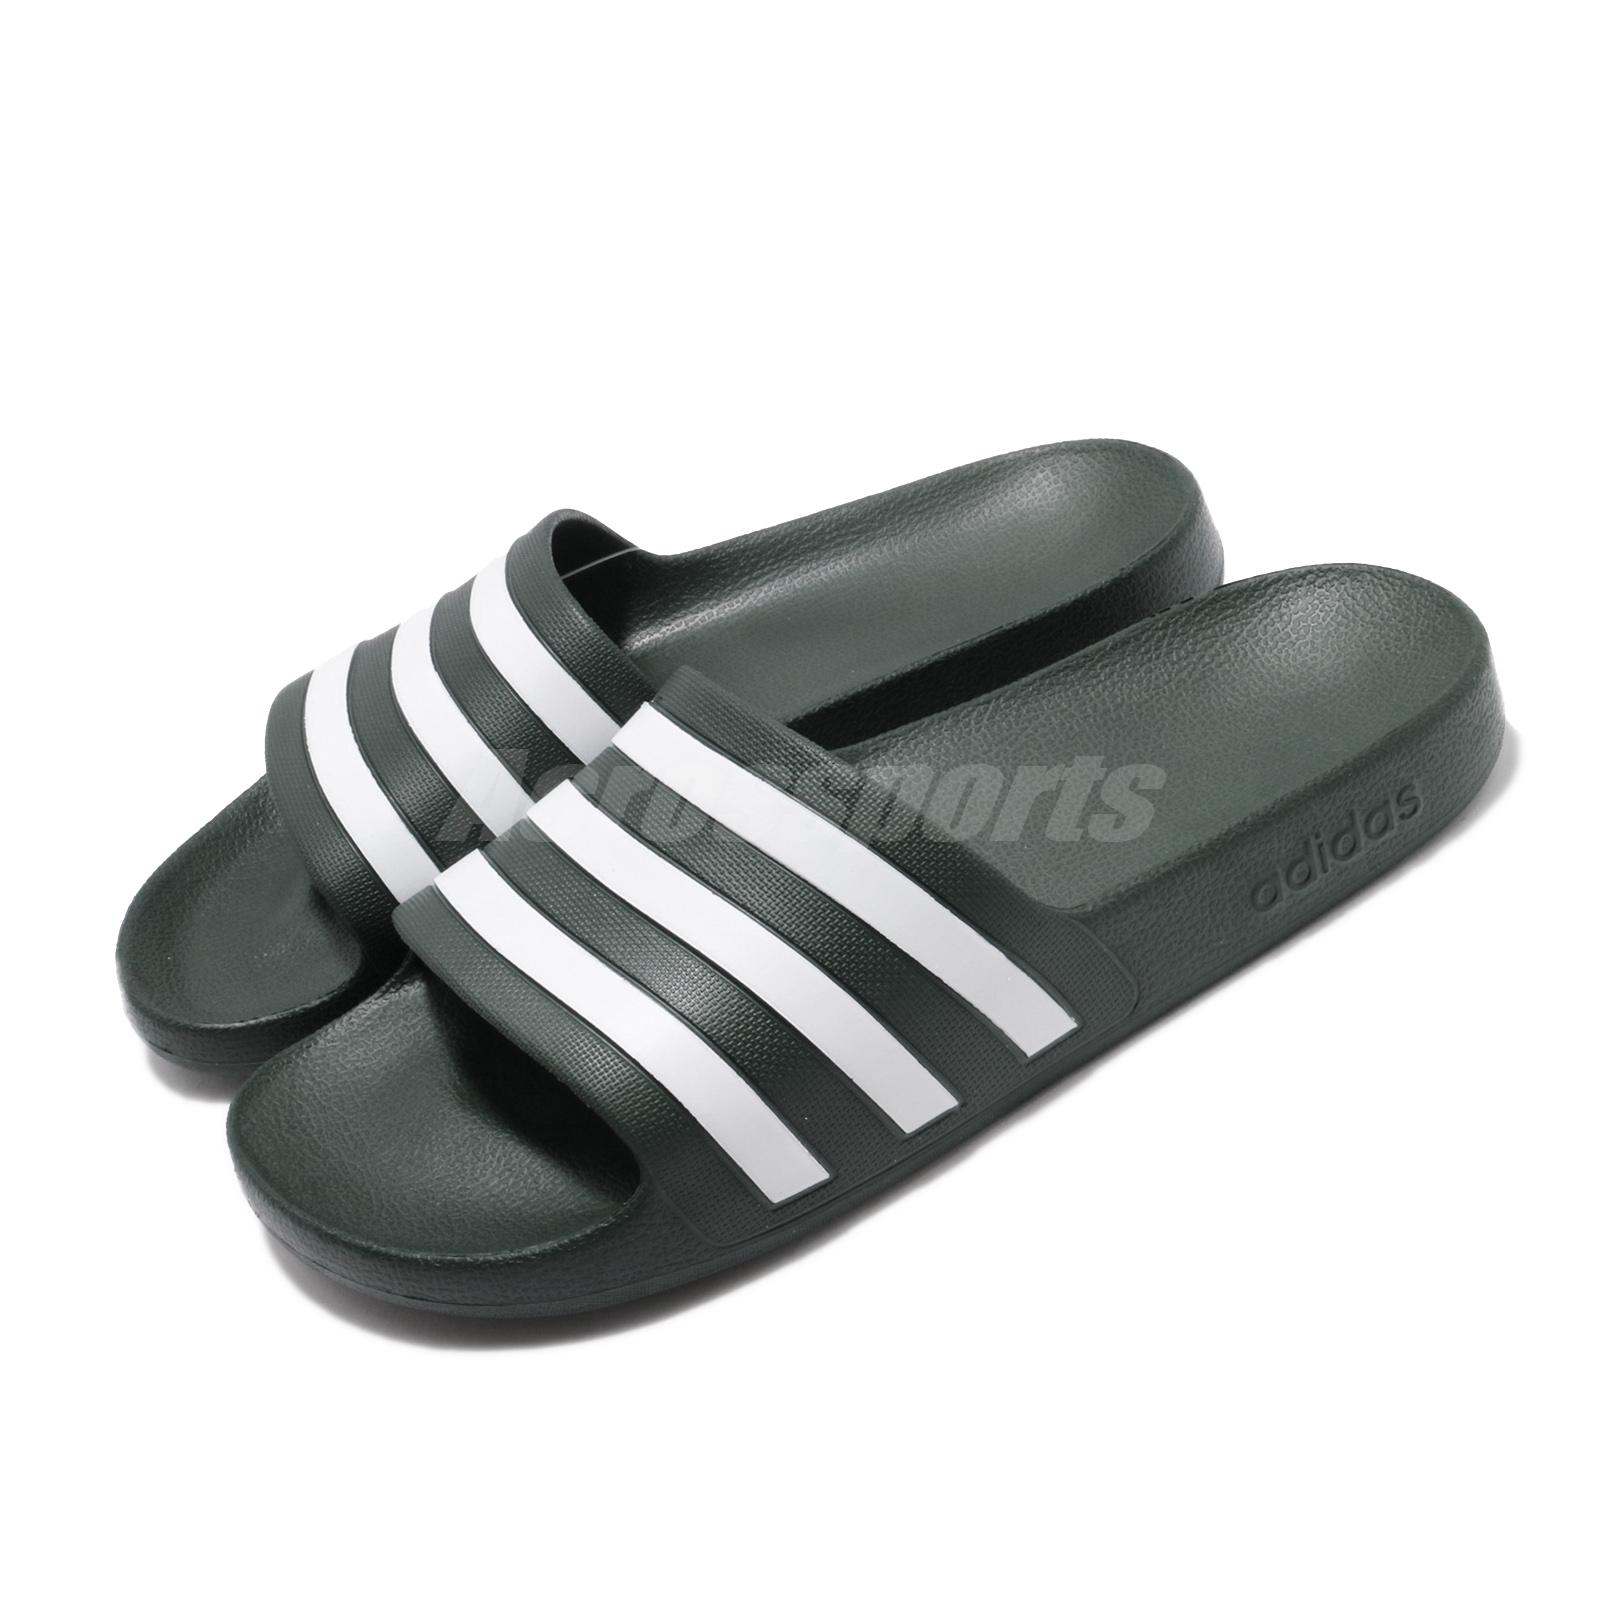 adidas slippers for men Off 61% - www